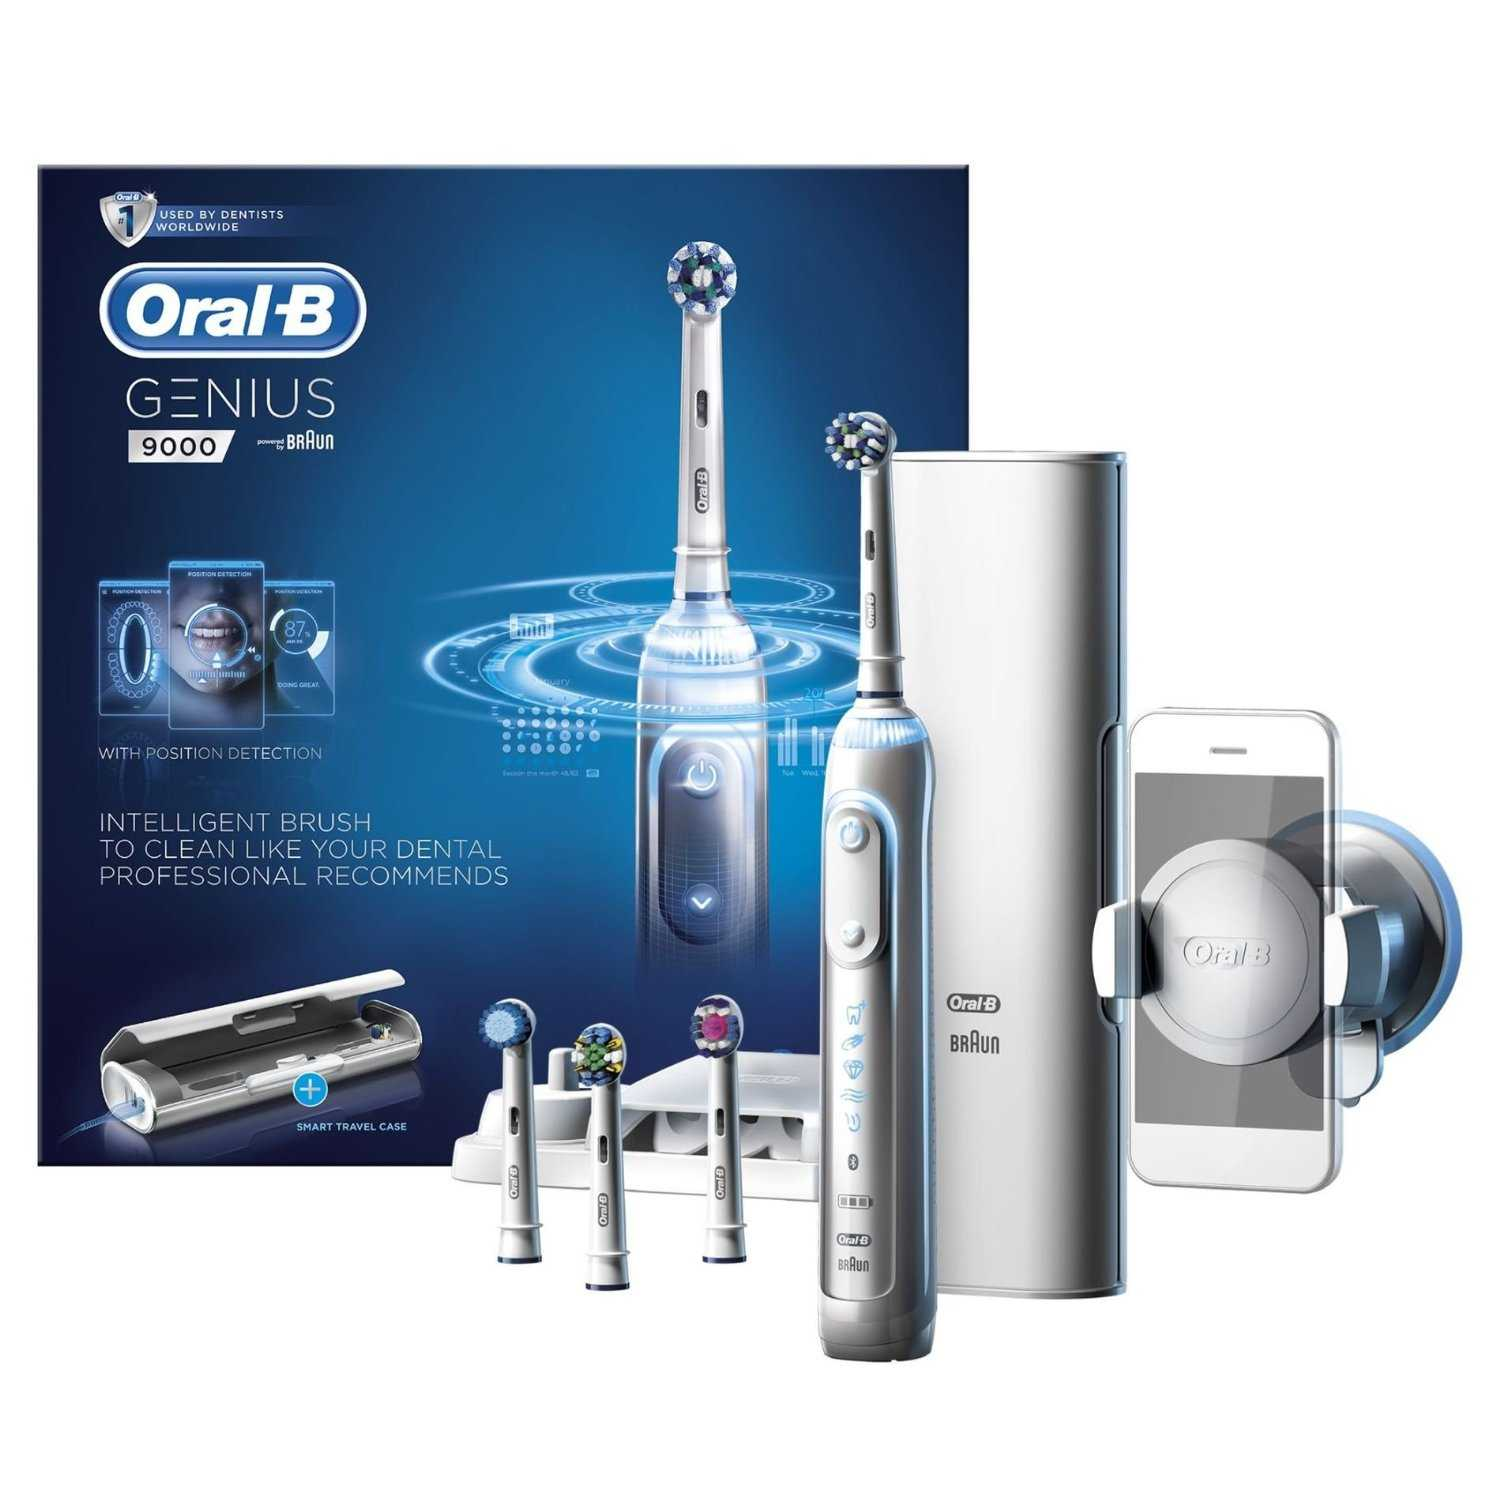 Brushing incorrectly can negatively affect oral health. To help people brush like their dental professional recommends, the Oral-B GENIUS intelligent toothbrush system combines position detection technology with pressure control and a professional timer.